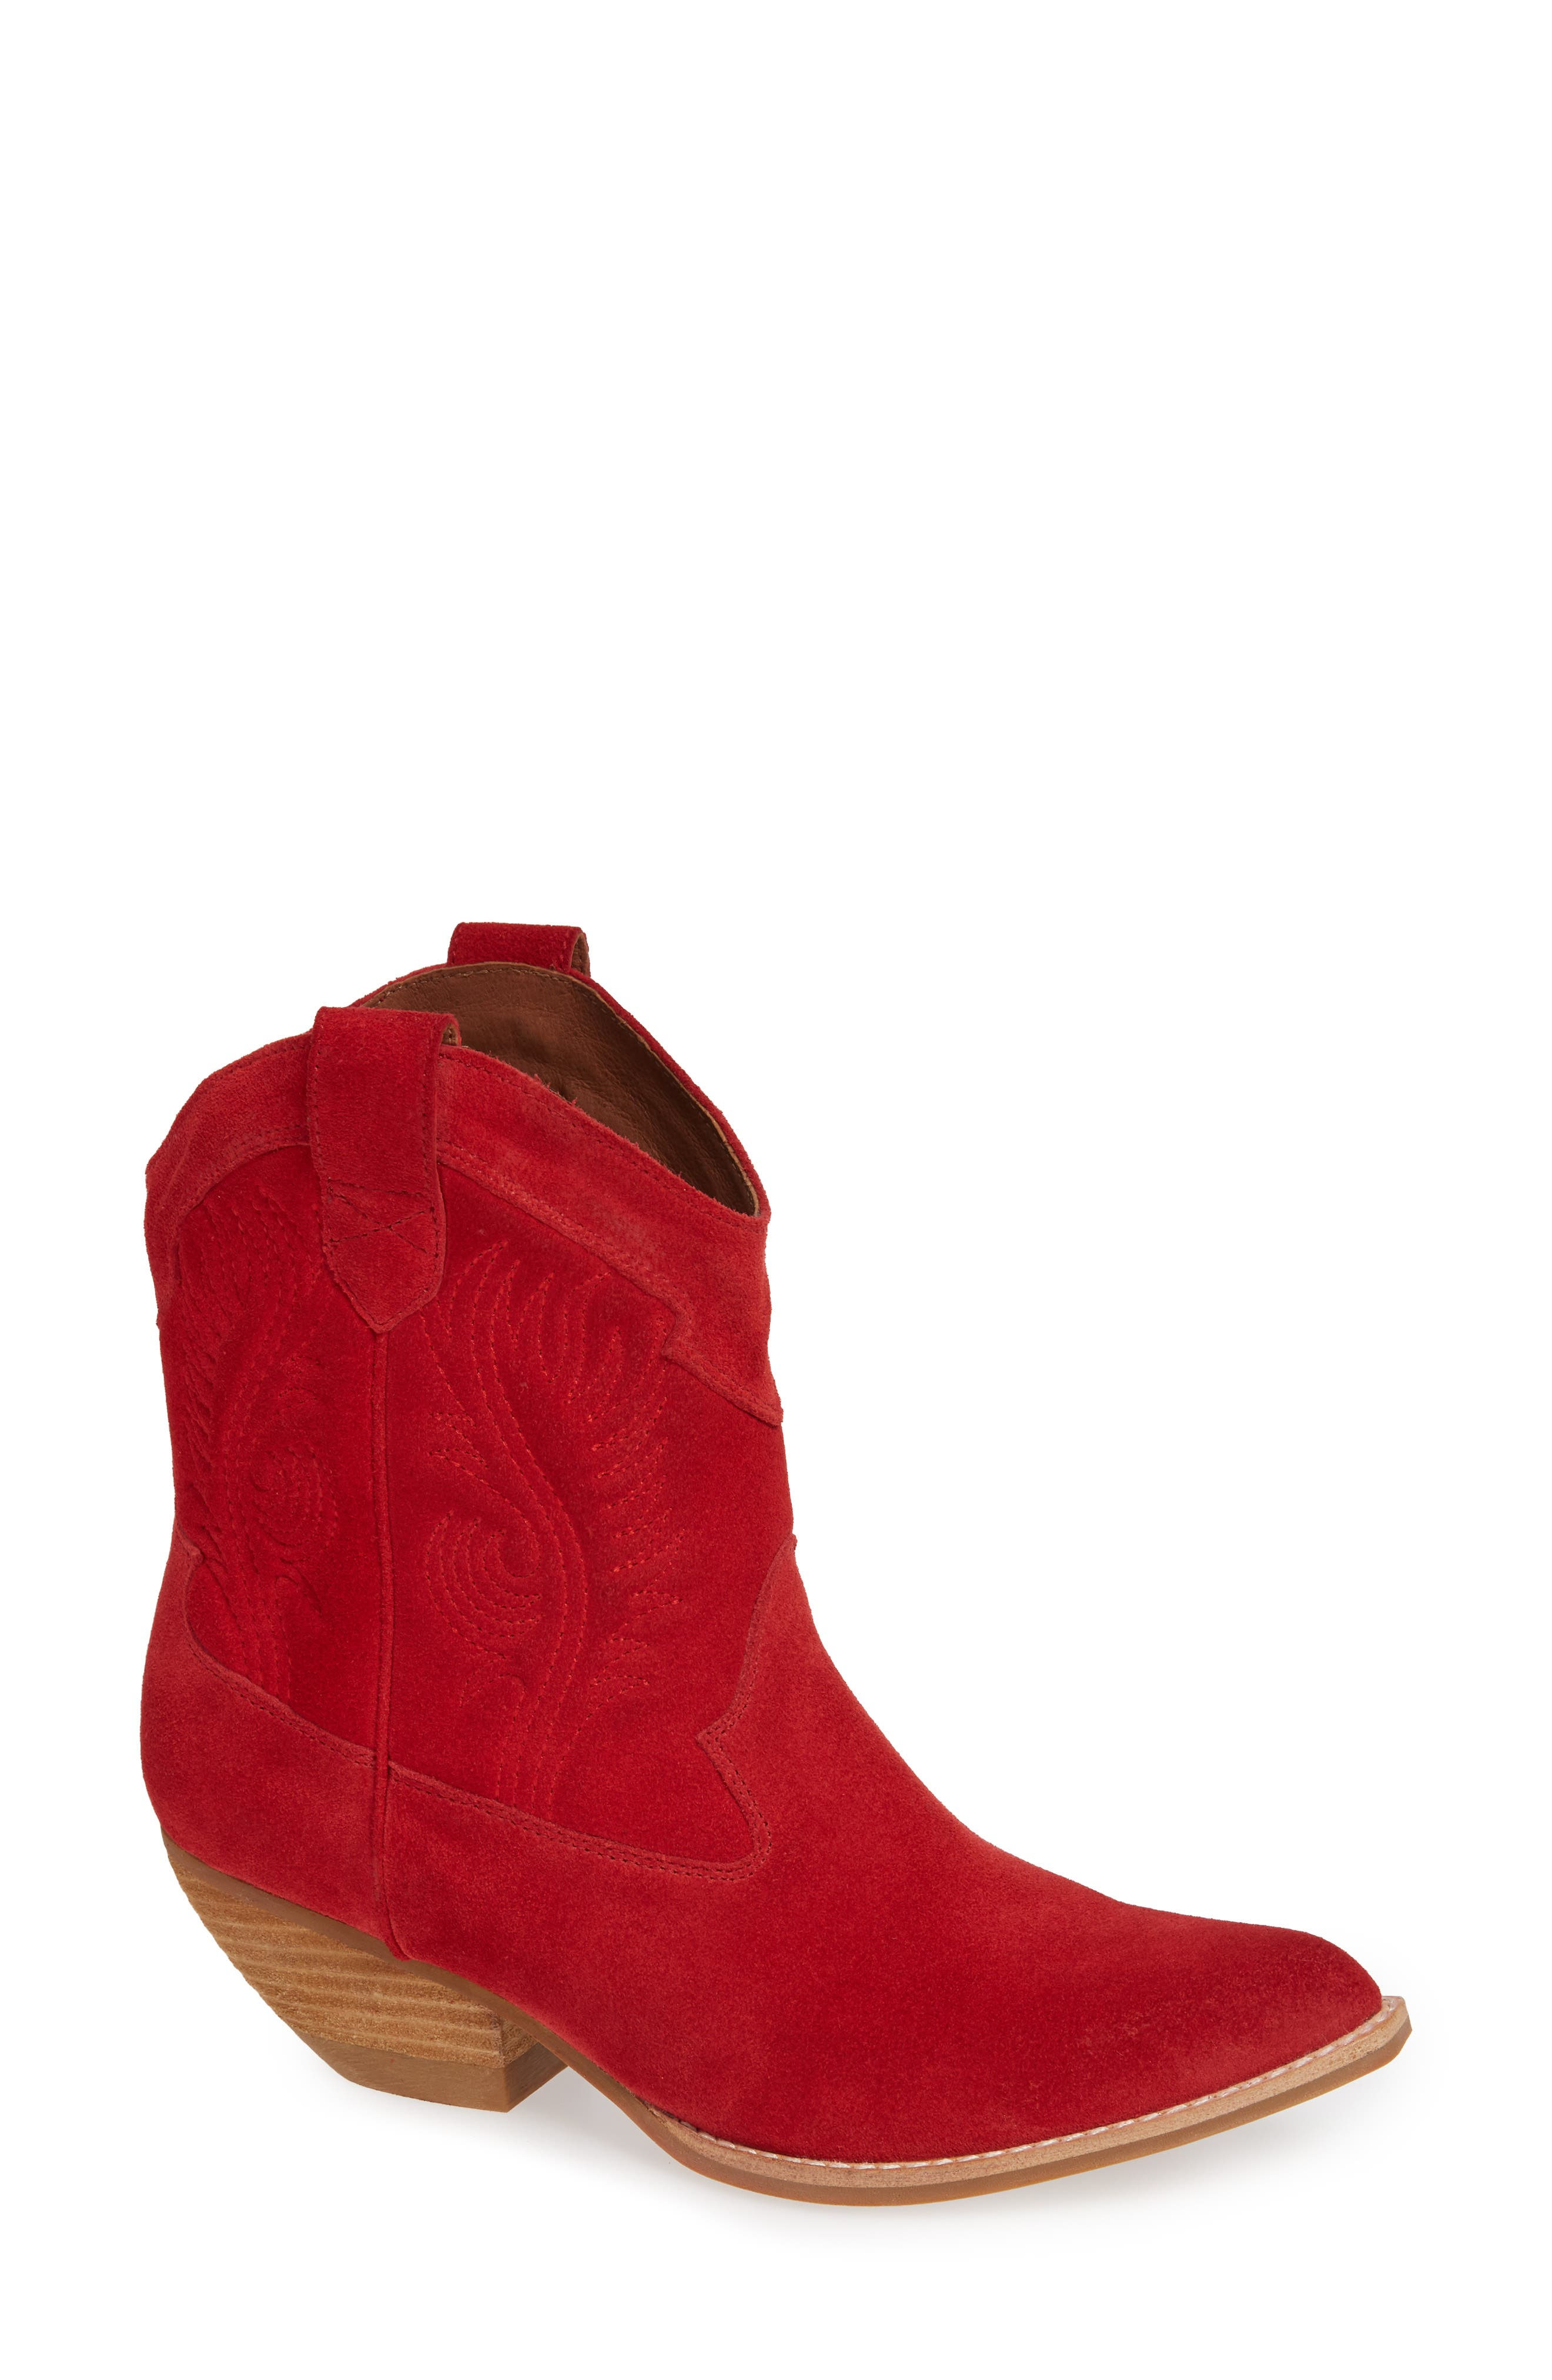 Calvera Western Boot,                             Main thumbnail 1, color,                             RED SUEDE